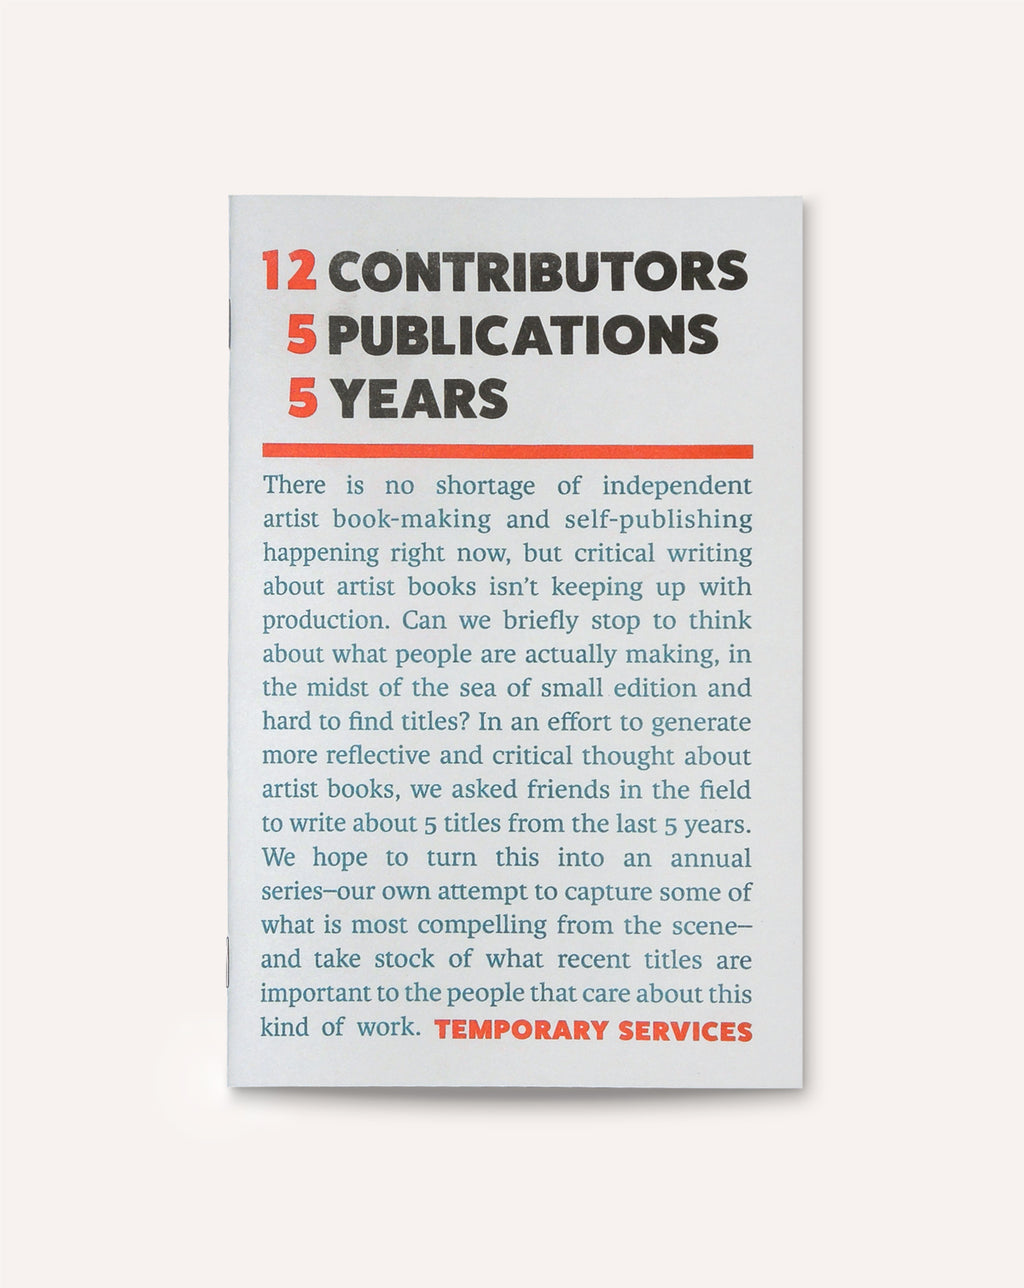 12 Contributors, 5 Publications, 5 Years